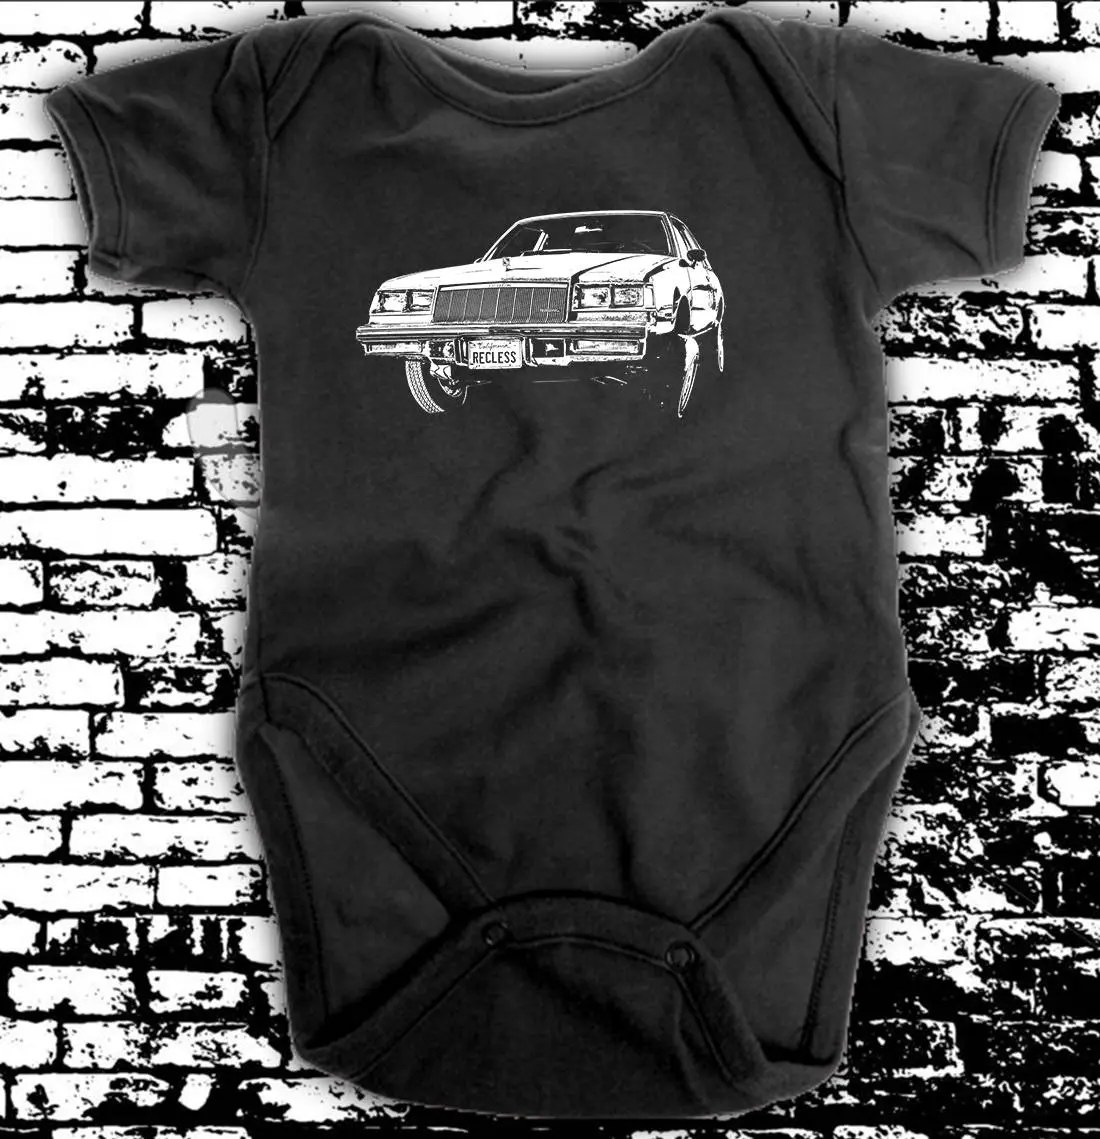 Baby Regal Lowrider Baby Regal Locked Up Infant One Piece Girls Boys